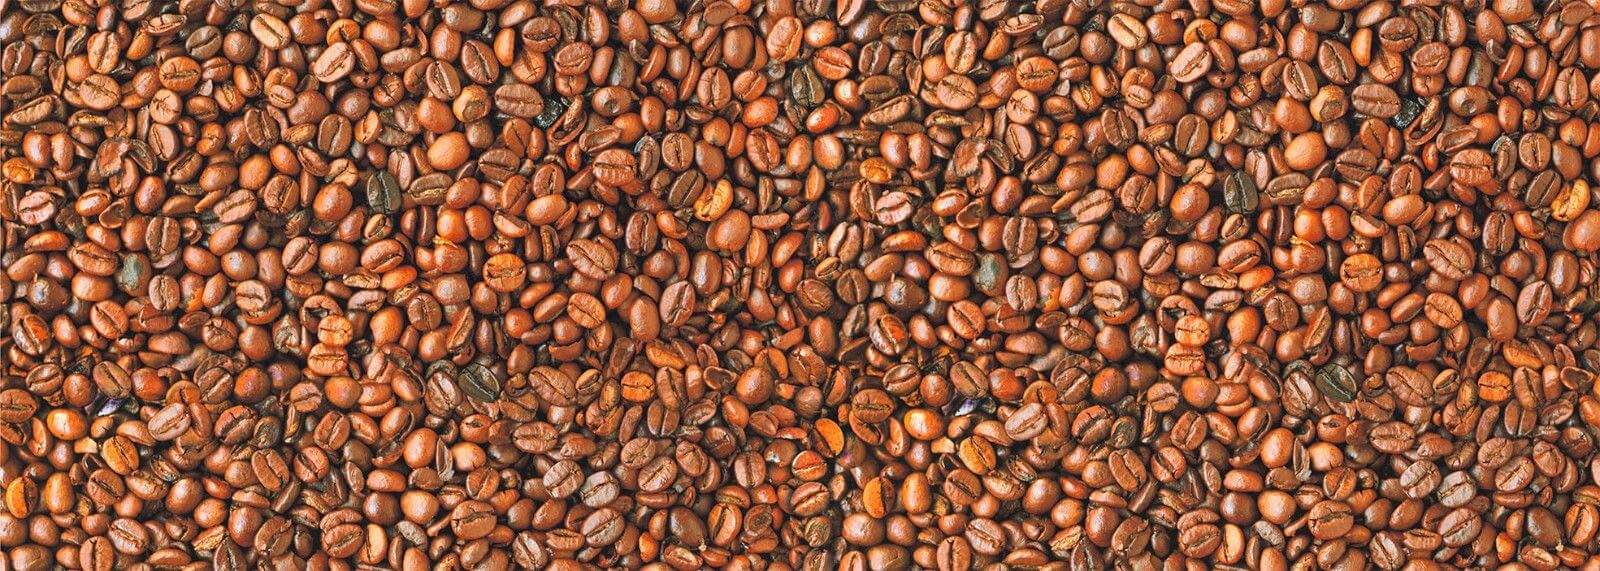 coffee-beans-bean-cafe-cotton-fabric-curtain-upholstery-craft-material-110-280-cm-extra-wide-brown-5c41e4871.jpg